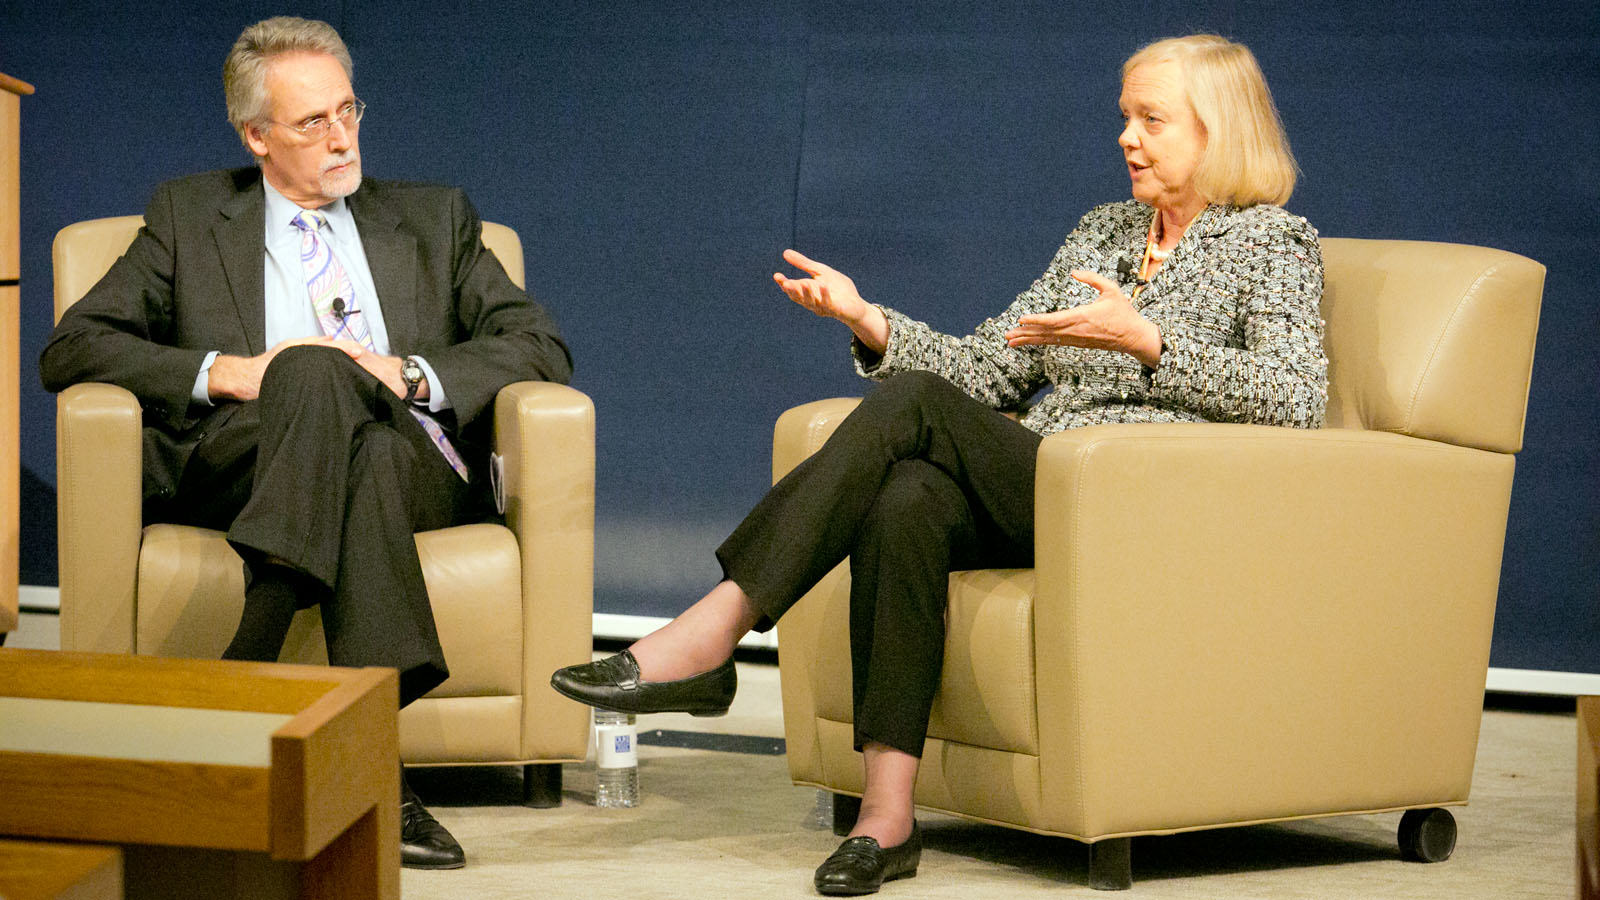 HP CEO Meg Whitman chatting with Duke Fuqua Dean Bill Boulding